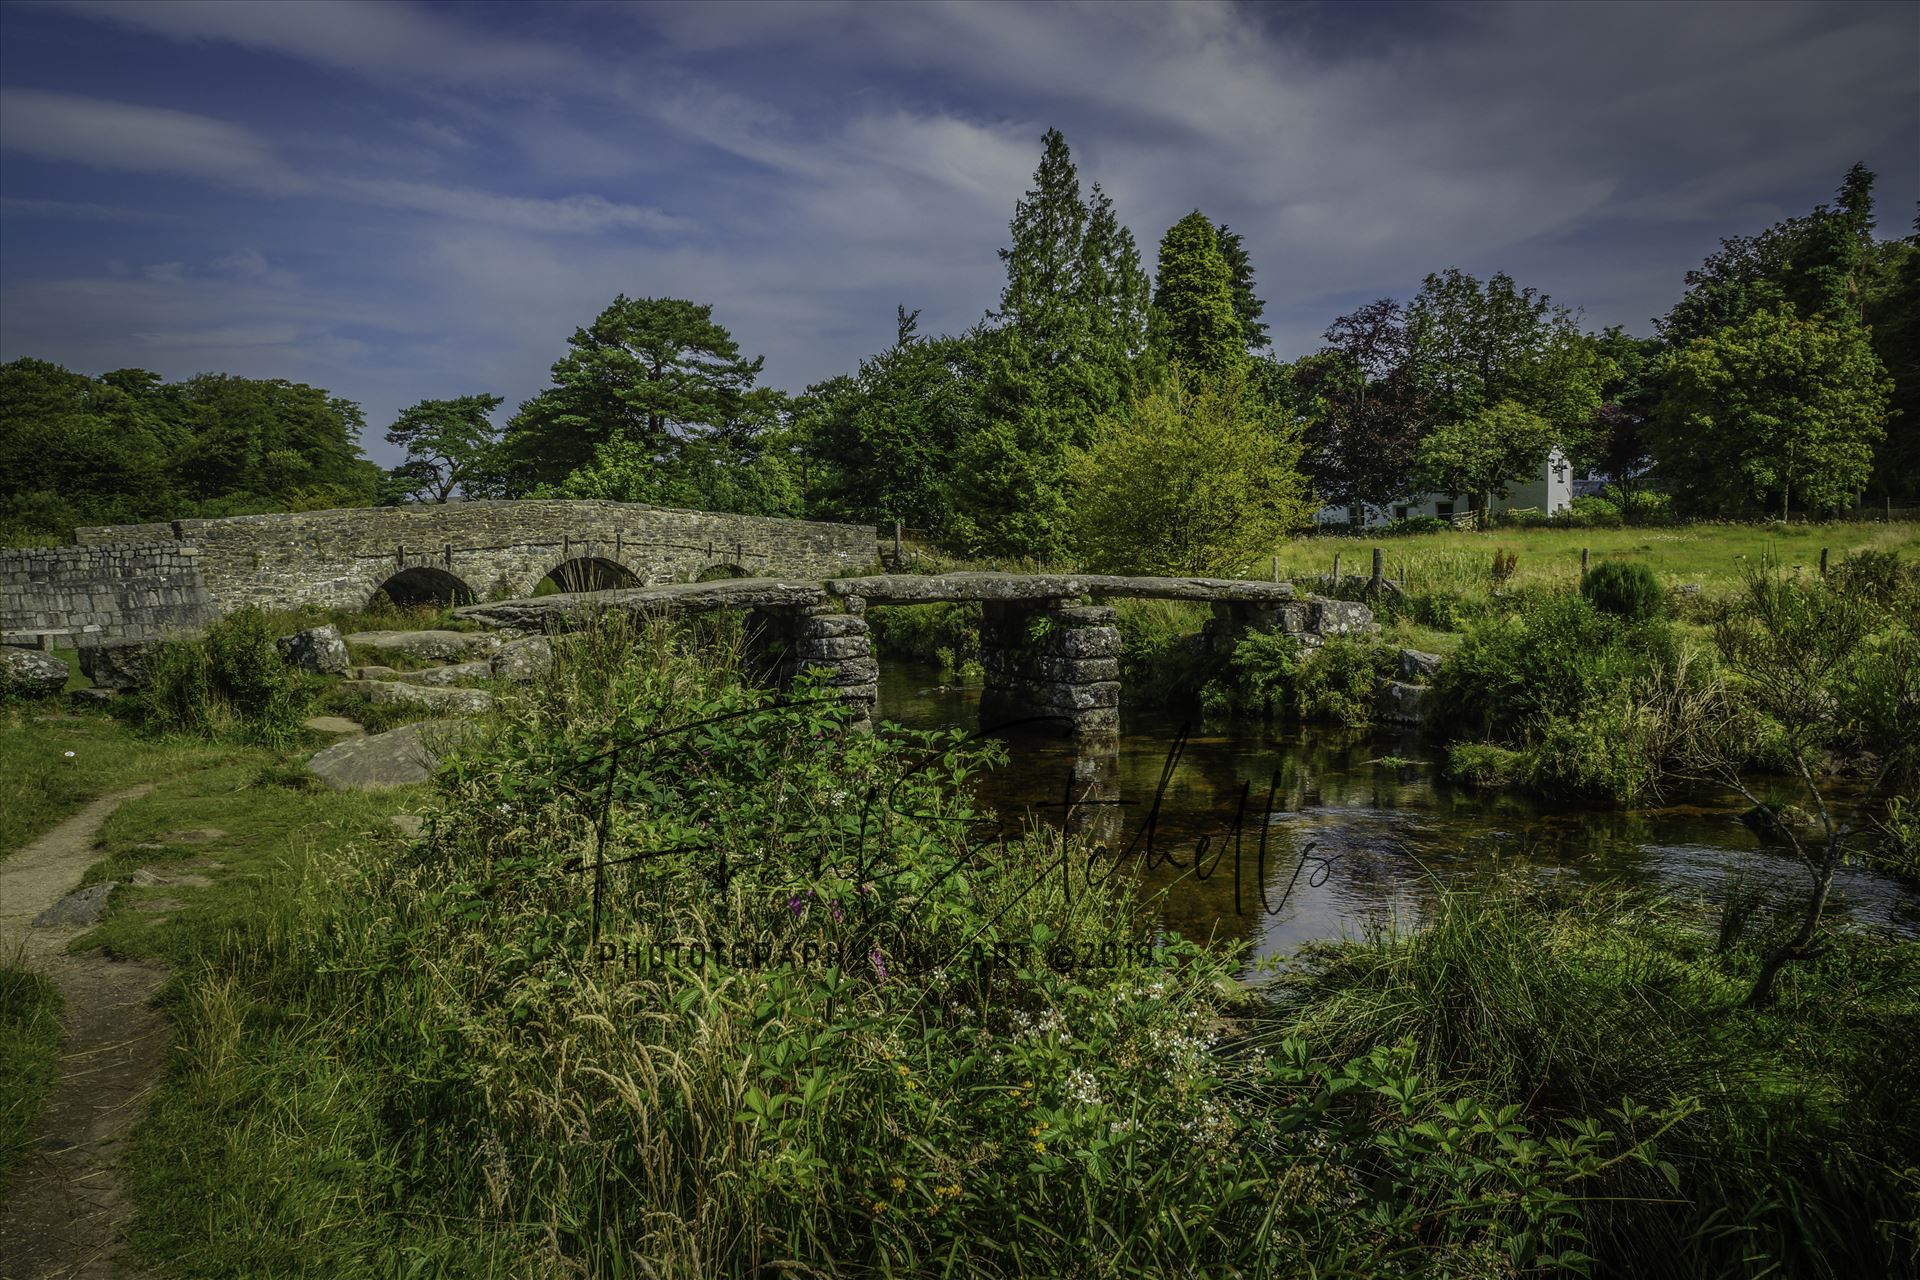 Postbridge Clapper Bridge 3 - A view of the 'Clapper Bridge' at Postbridge in the Dartmoor National Park on a warm August day visit while on the way to Cornwall with the main road bridge behind and a glimpse of the